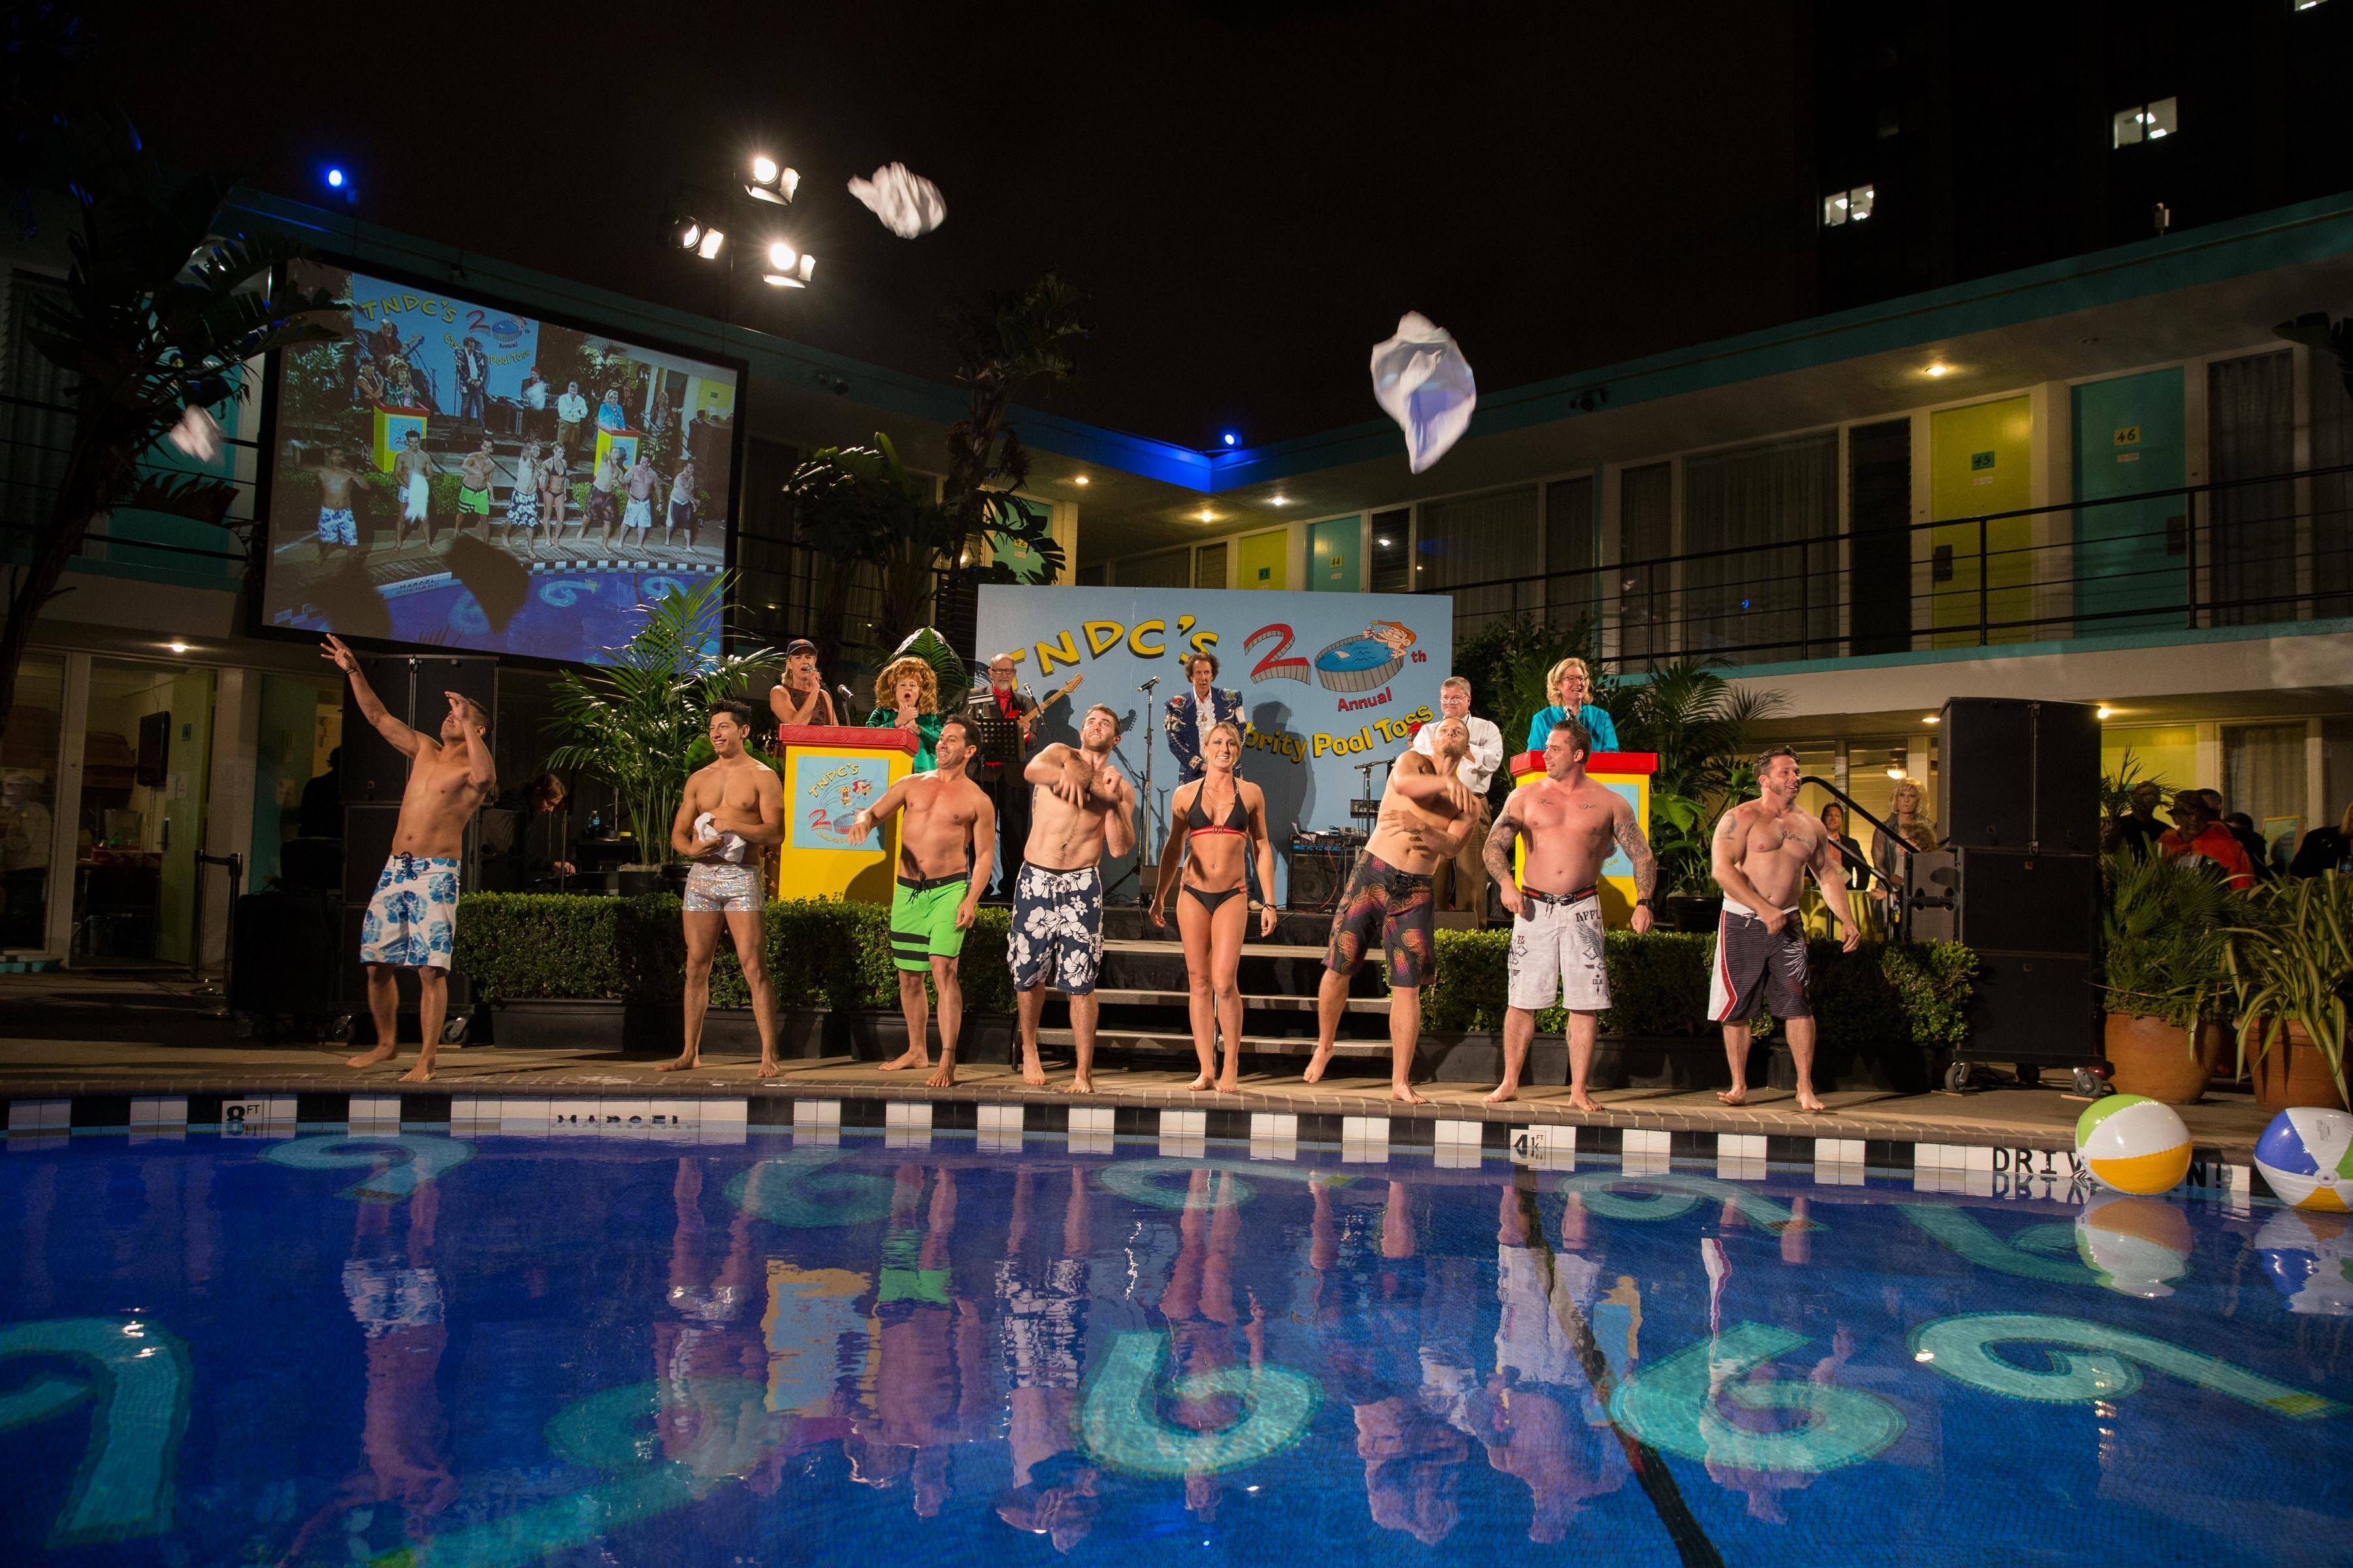 TNDC's 20th Annual Celebrity Pool Toss